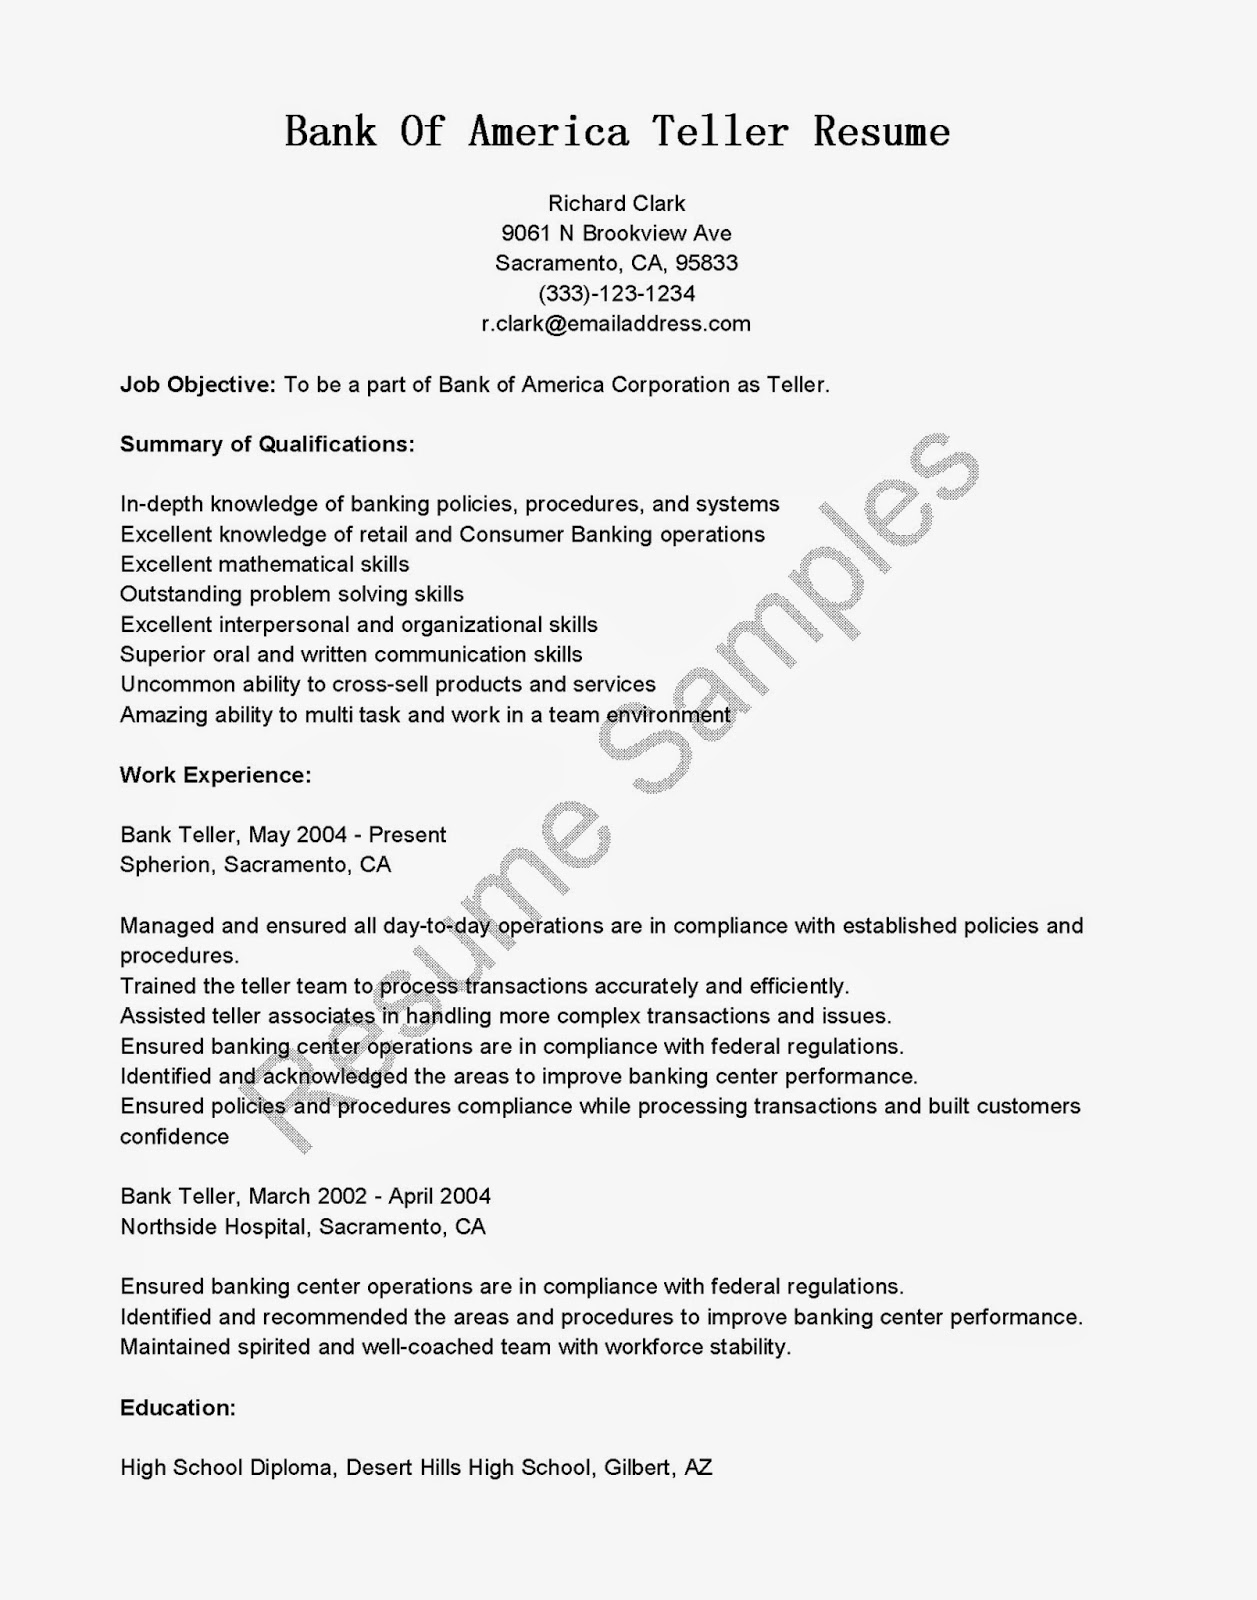 Resume Example For Job Germany Cover Letter Example German Cover Letter  Samples Thebalance Templates And Examples  American Resume Samples